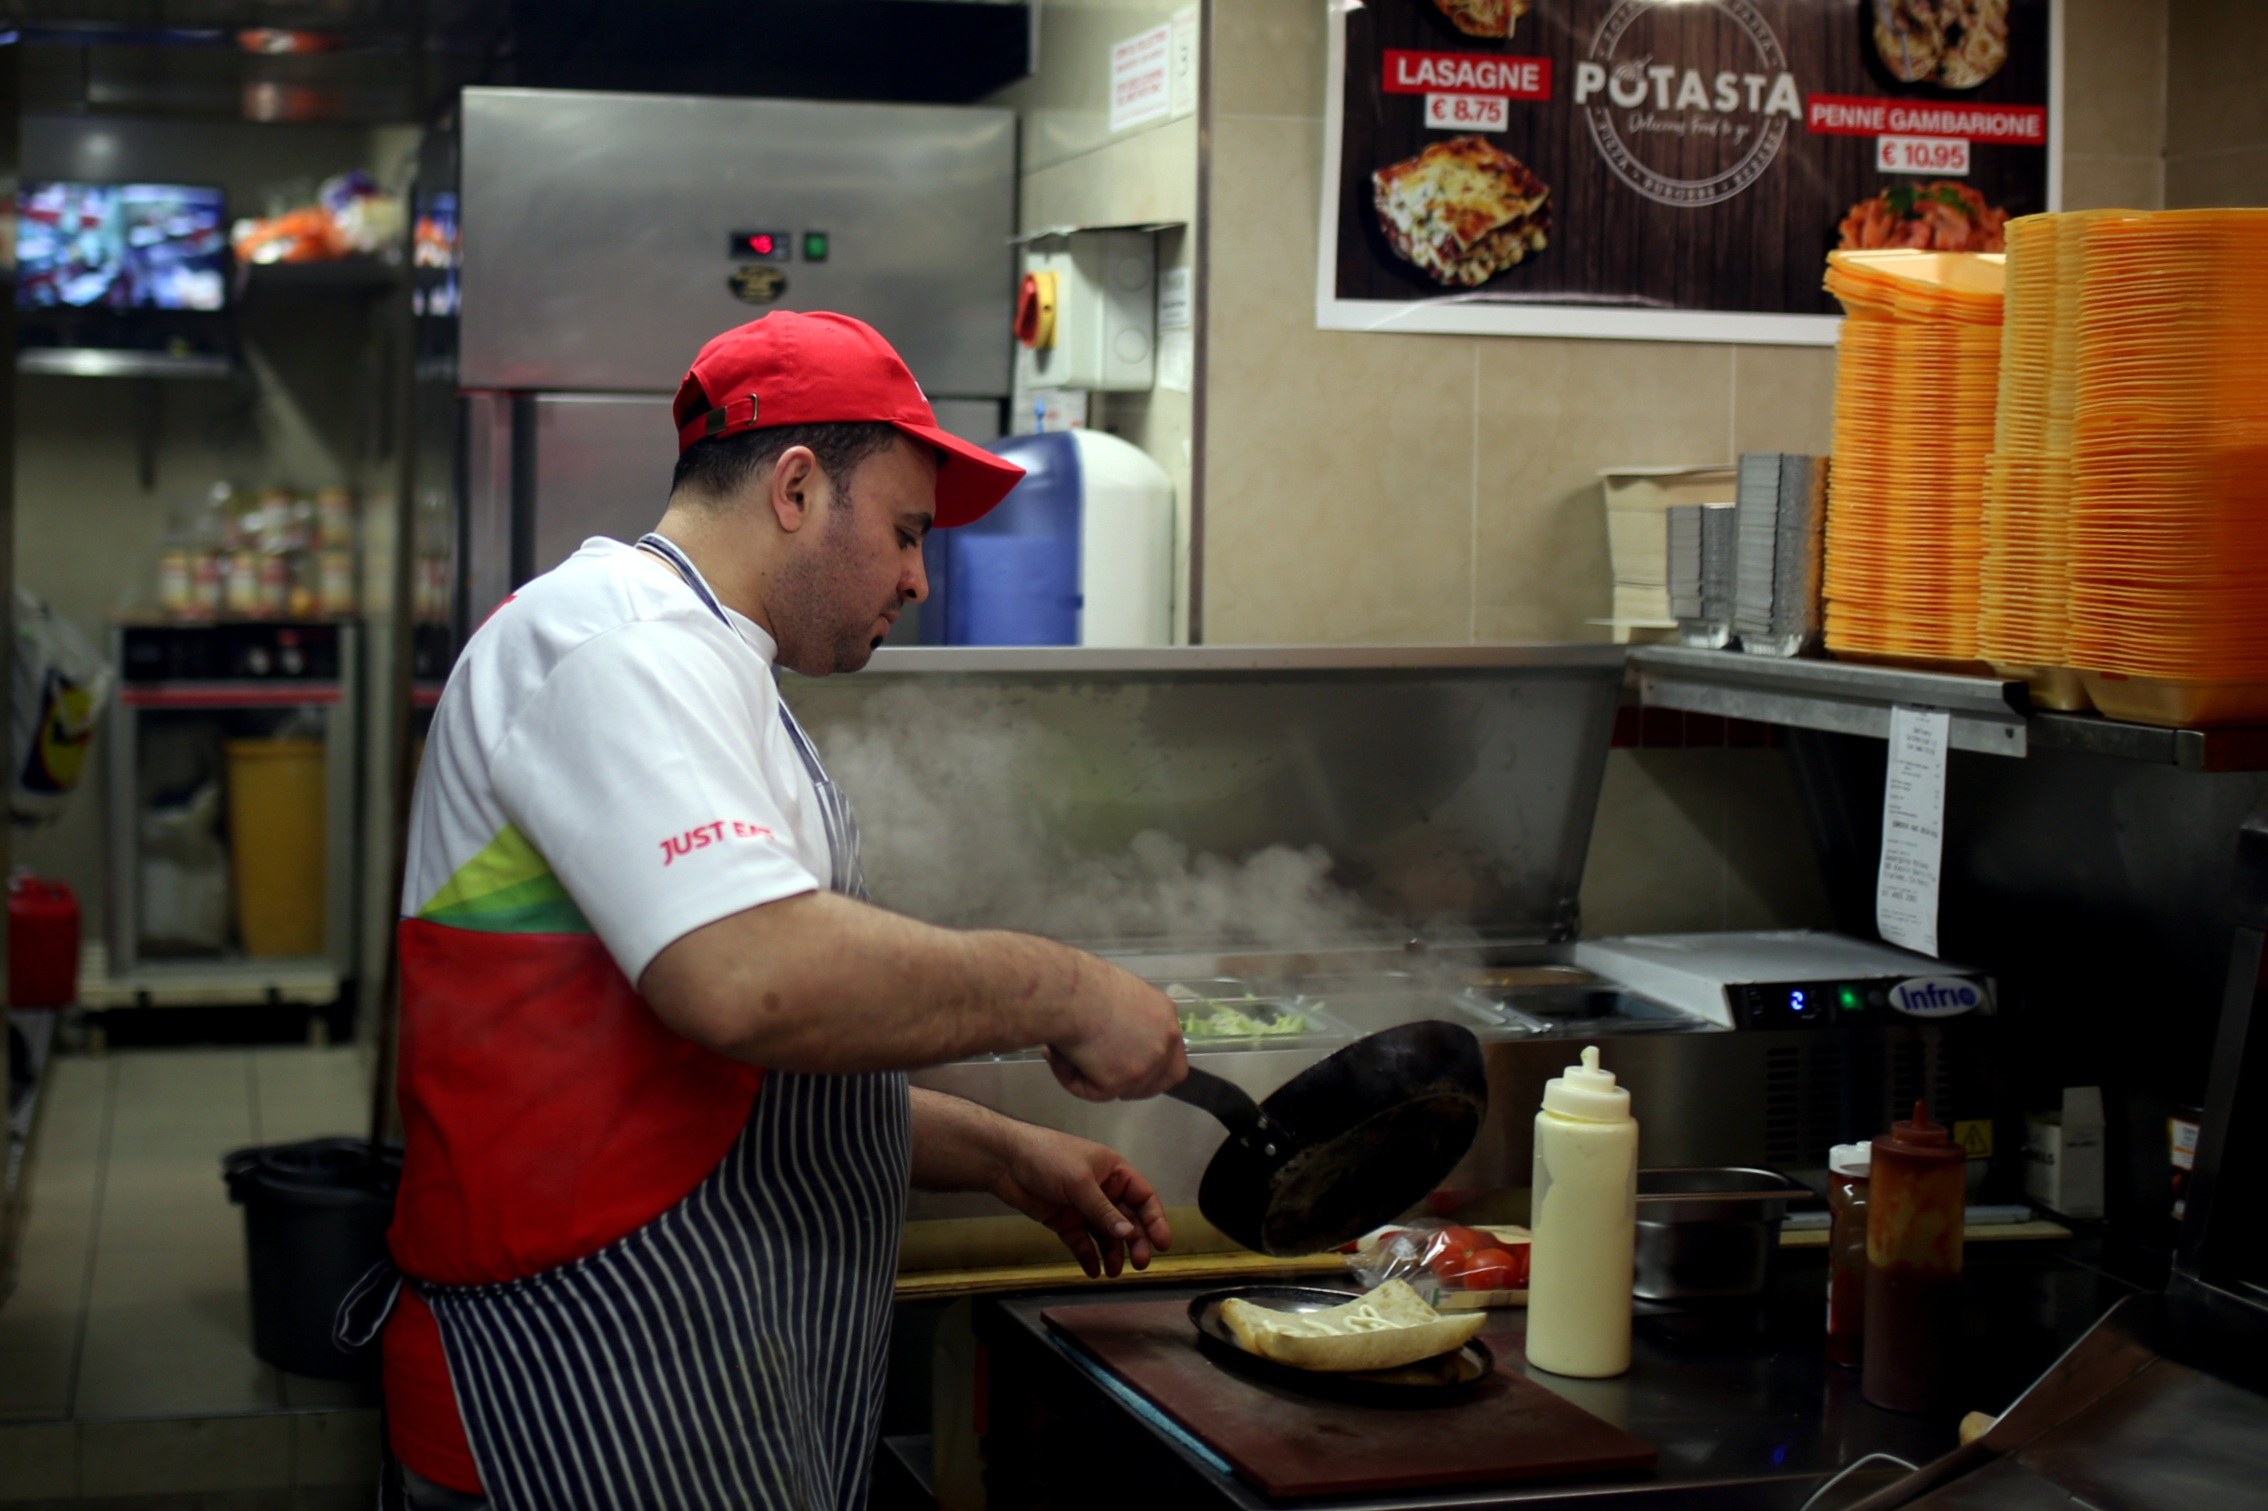 Alaa Bahlouan, who owns a restaurant in Tralee, says he has been trying to obtain legal residency in Ireland for five years (MEE/Mostafa Darwish)